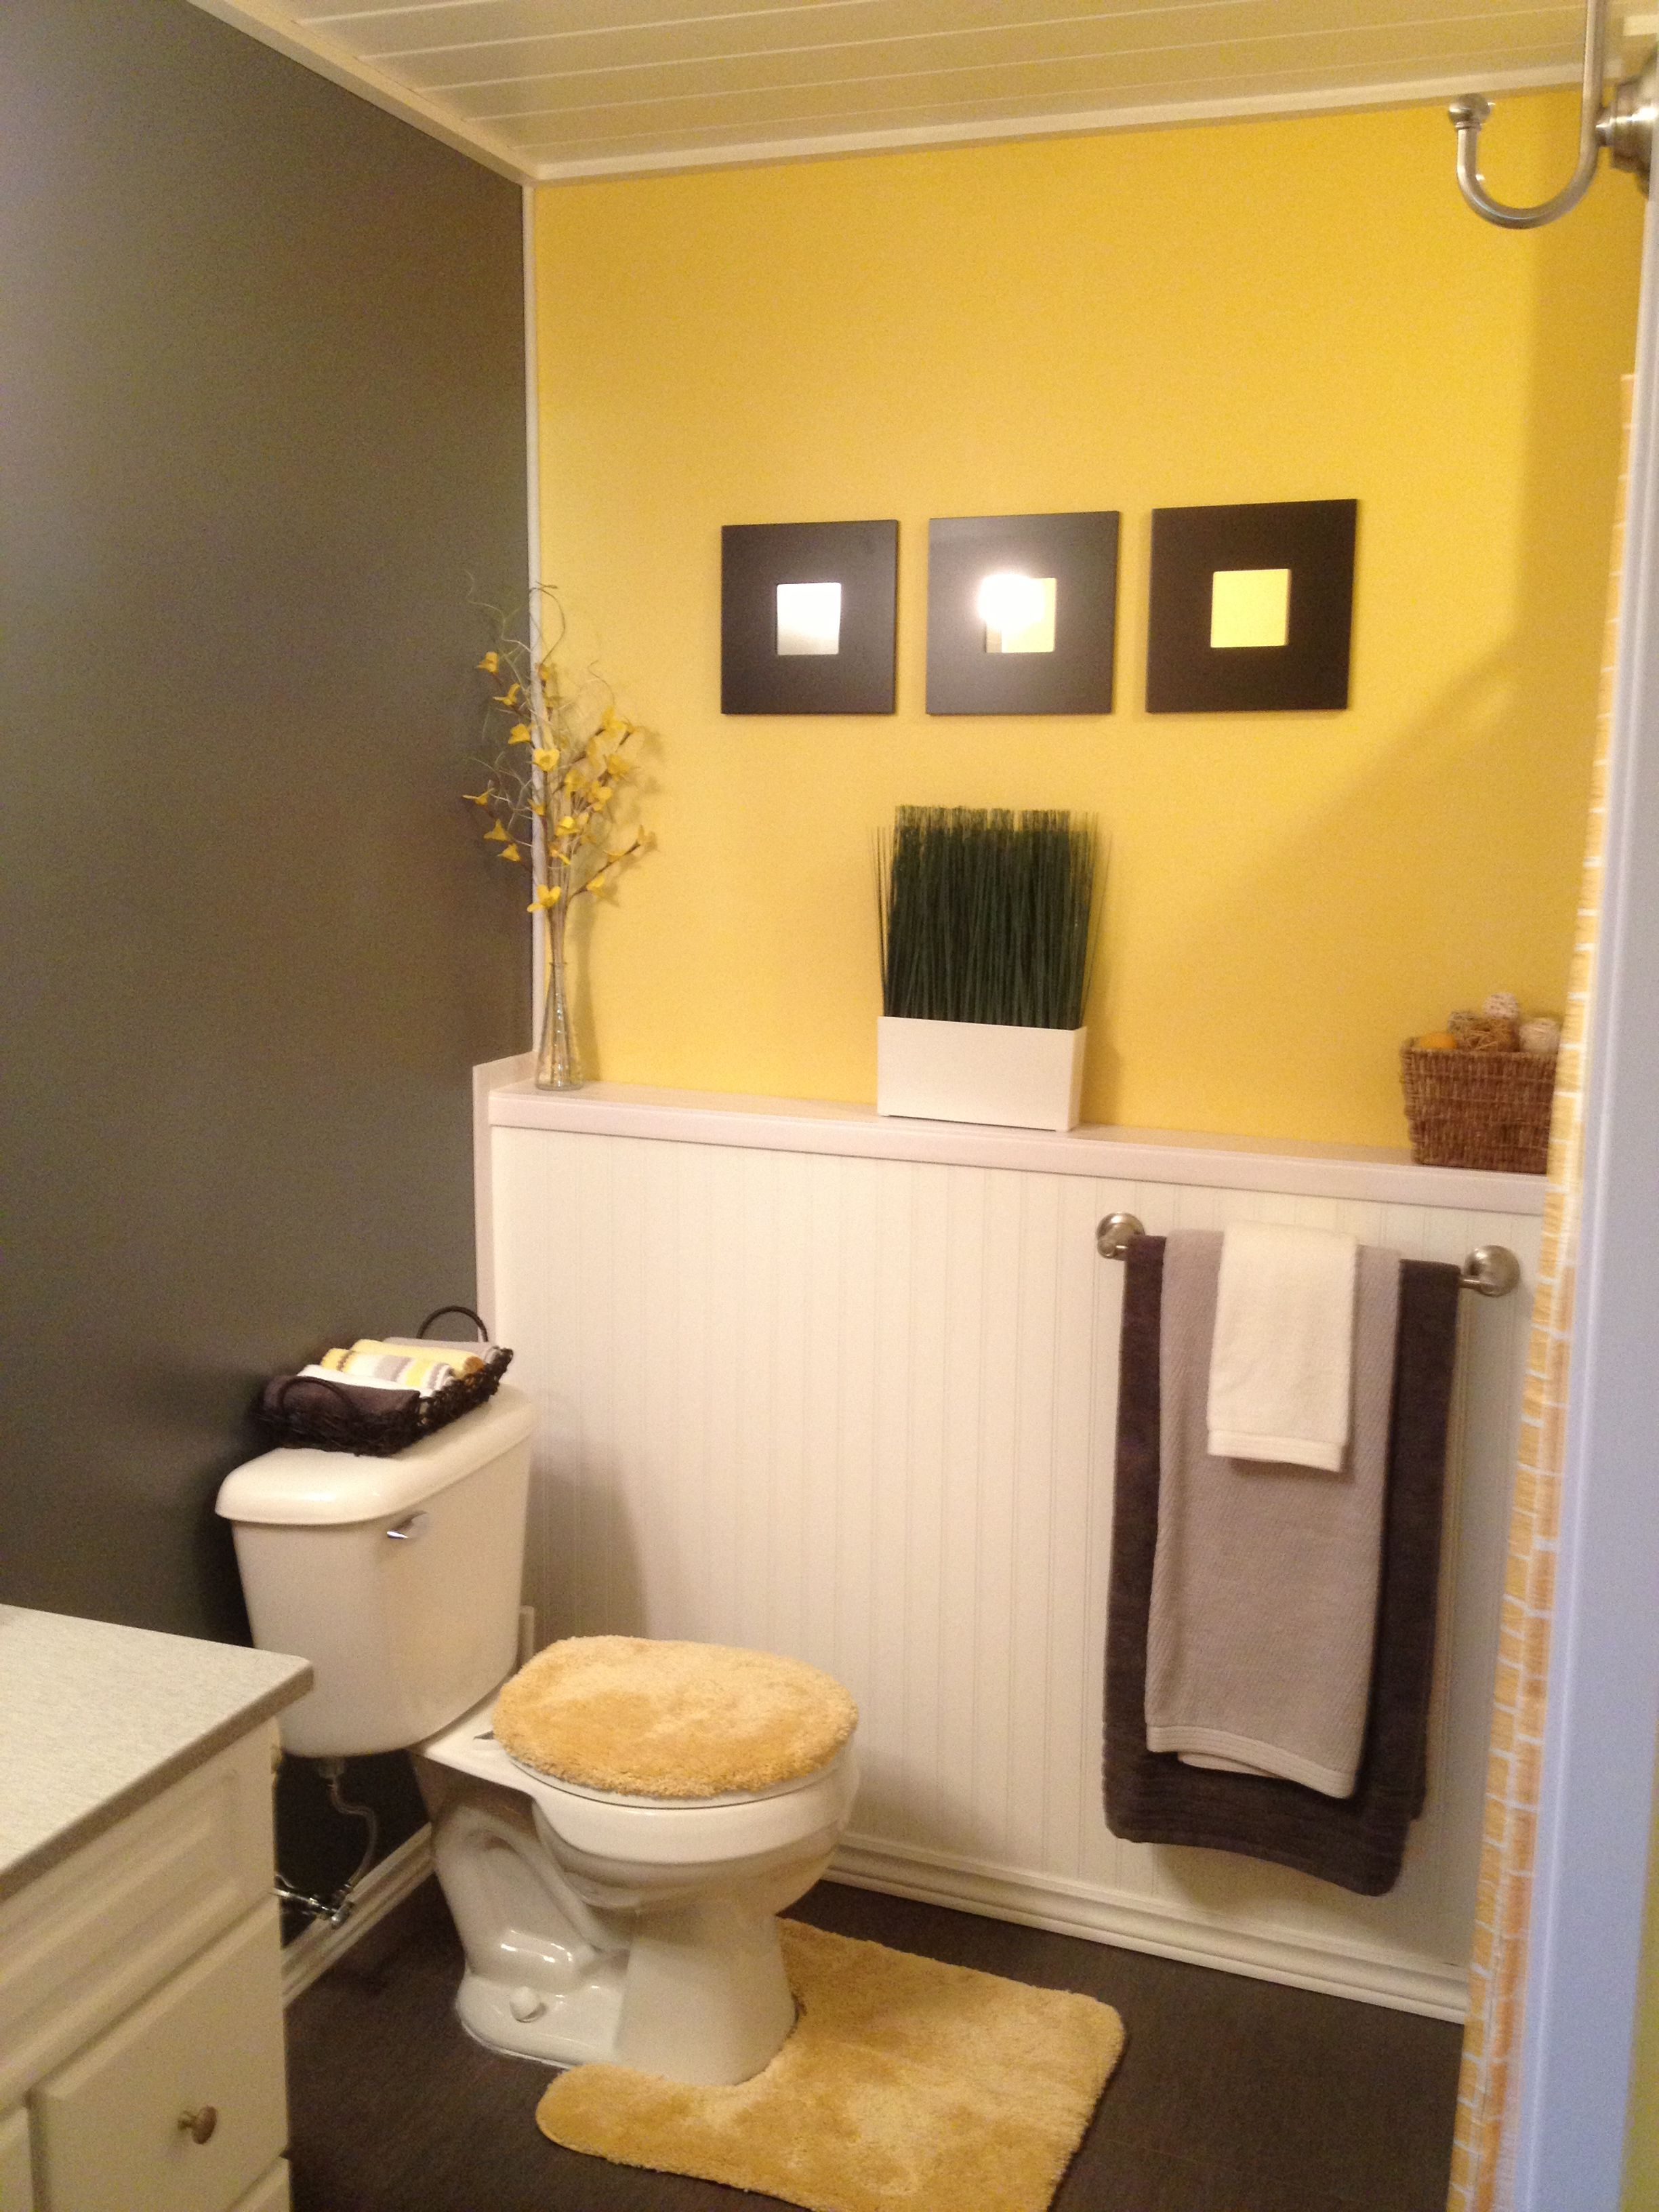 Pin By Emily Horn On For The Home Yellow Bathroom Decor Gray Bathroom Decor Yellow Bathrooms